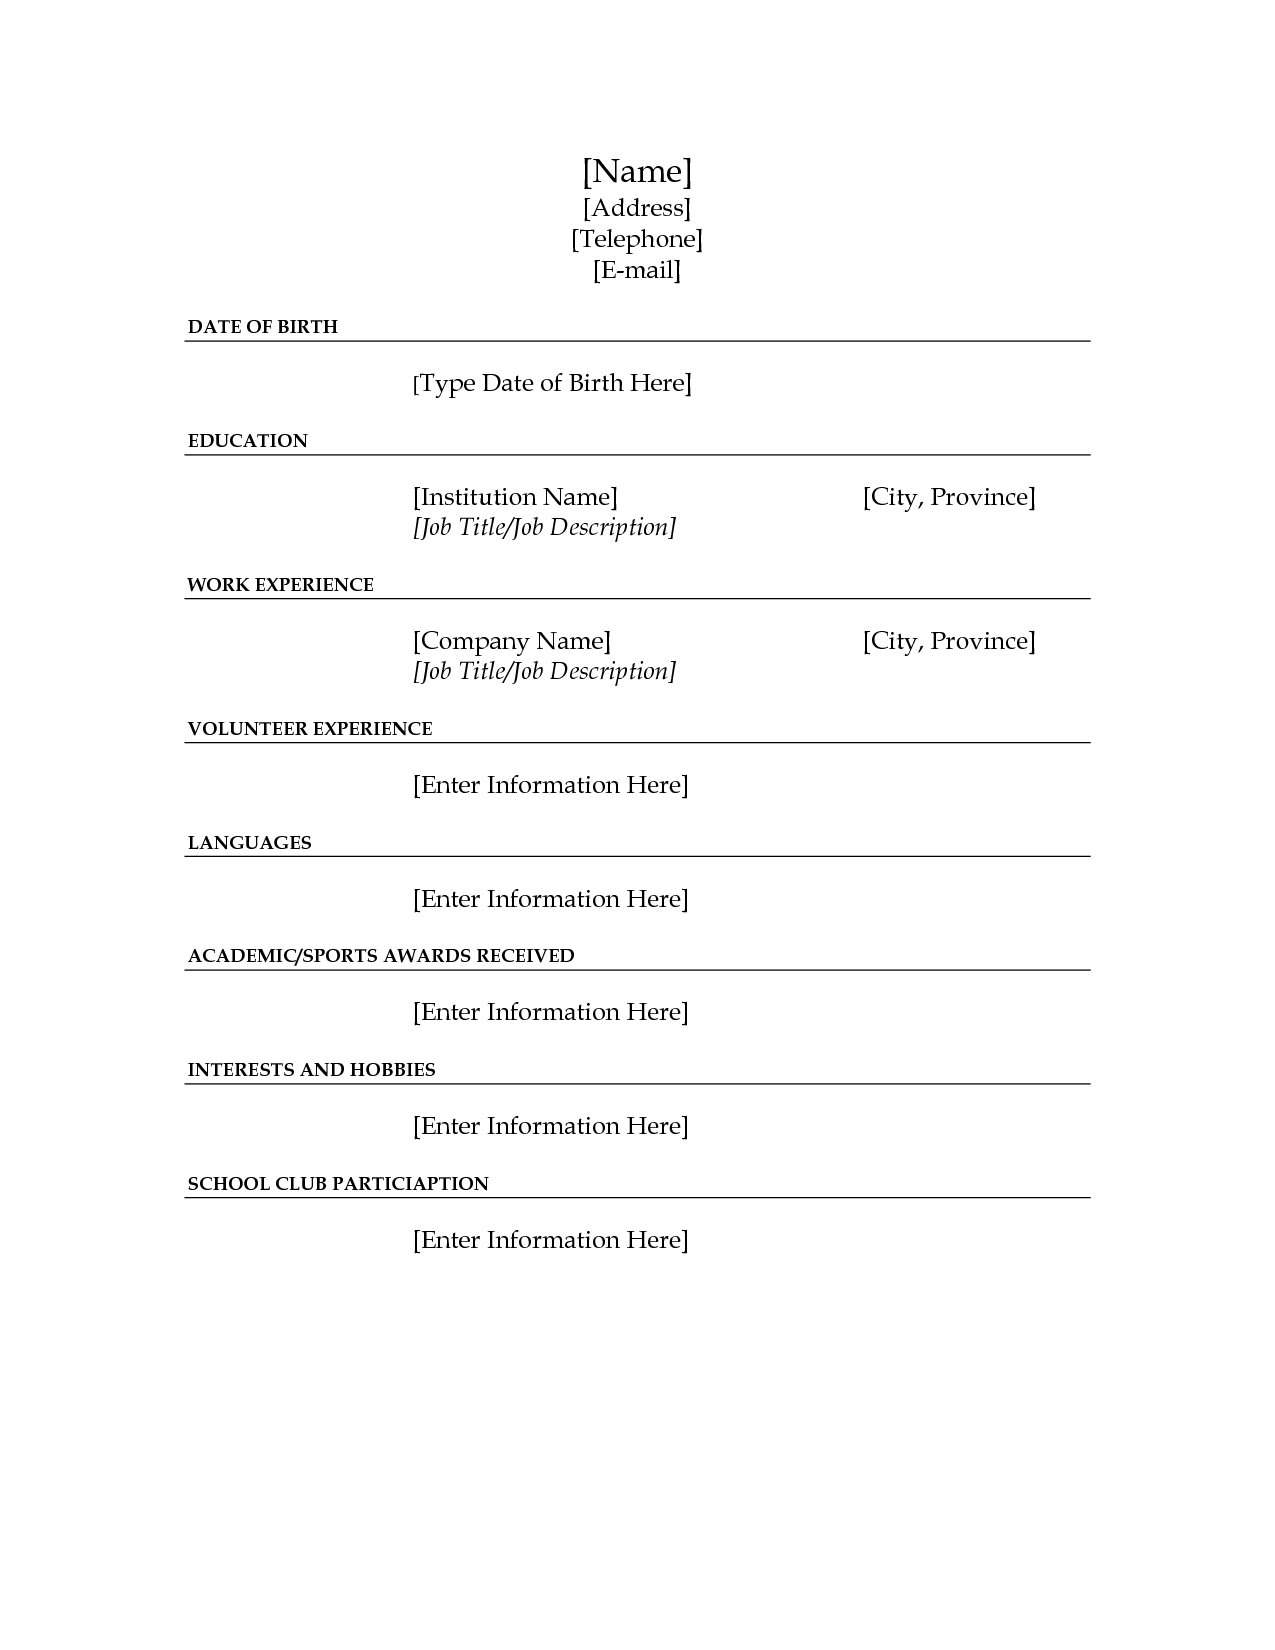 Free Online Resume Templates Printable And Builder For Template Maker App  Www.free Resume Builder